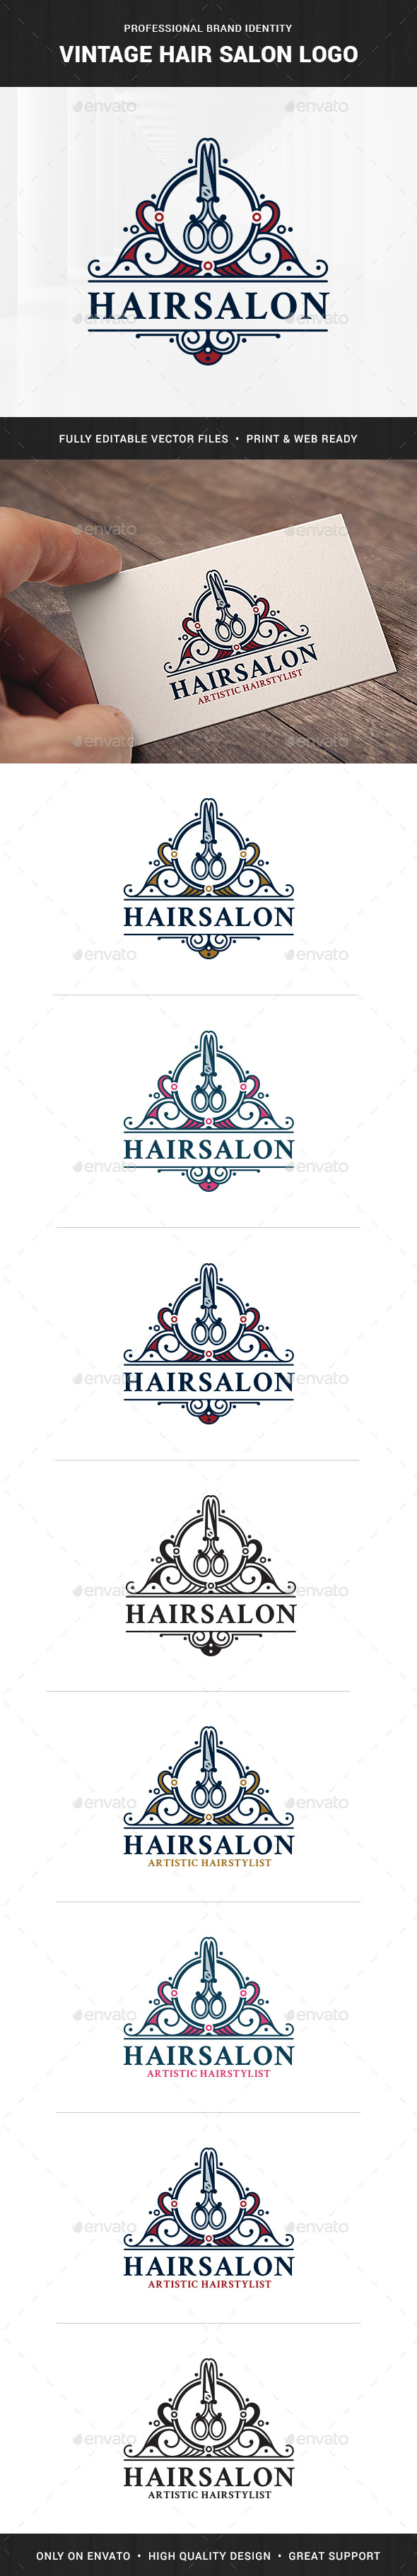 Vintage Hair Salon Logo Template - Crests Logo Templates